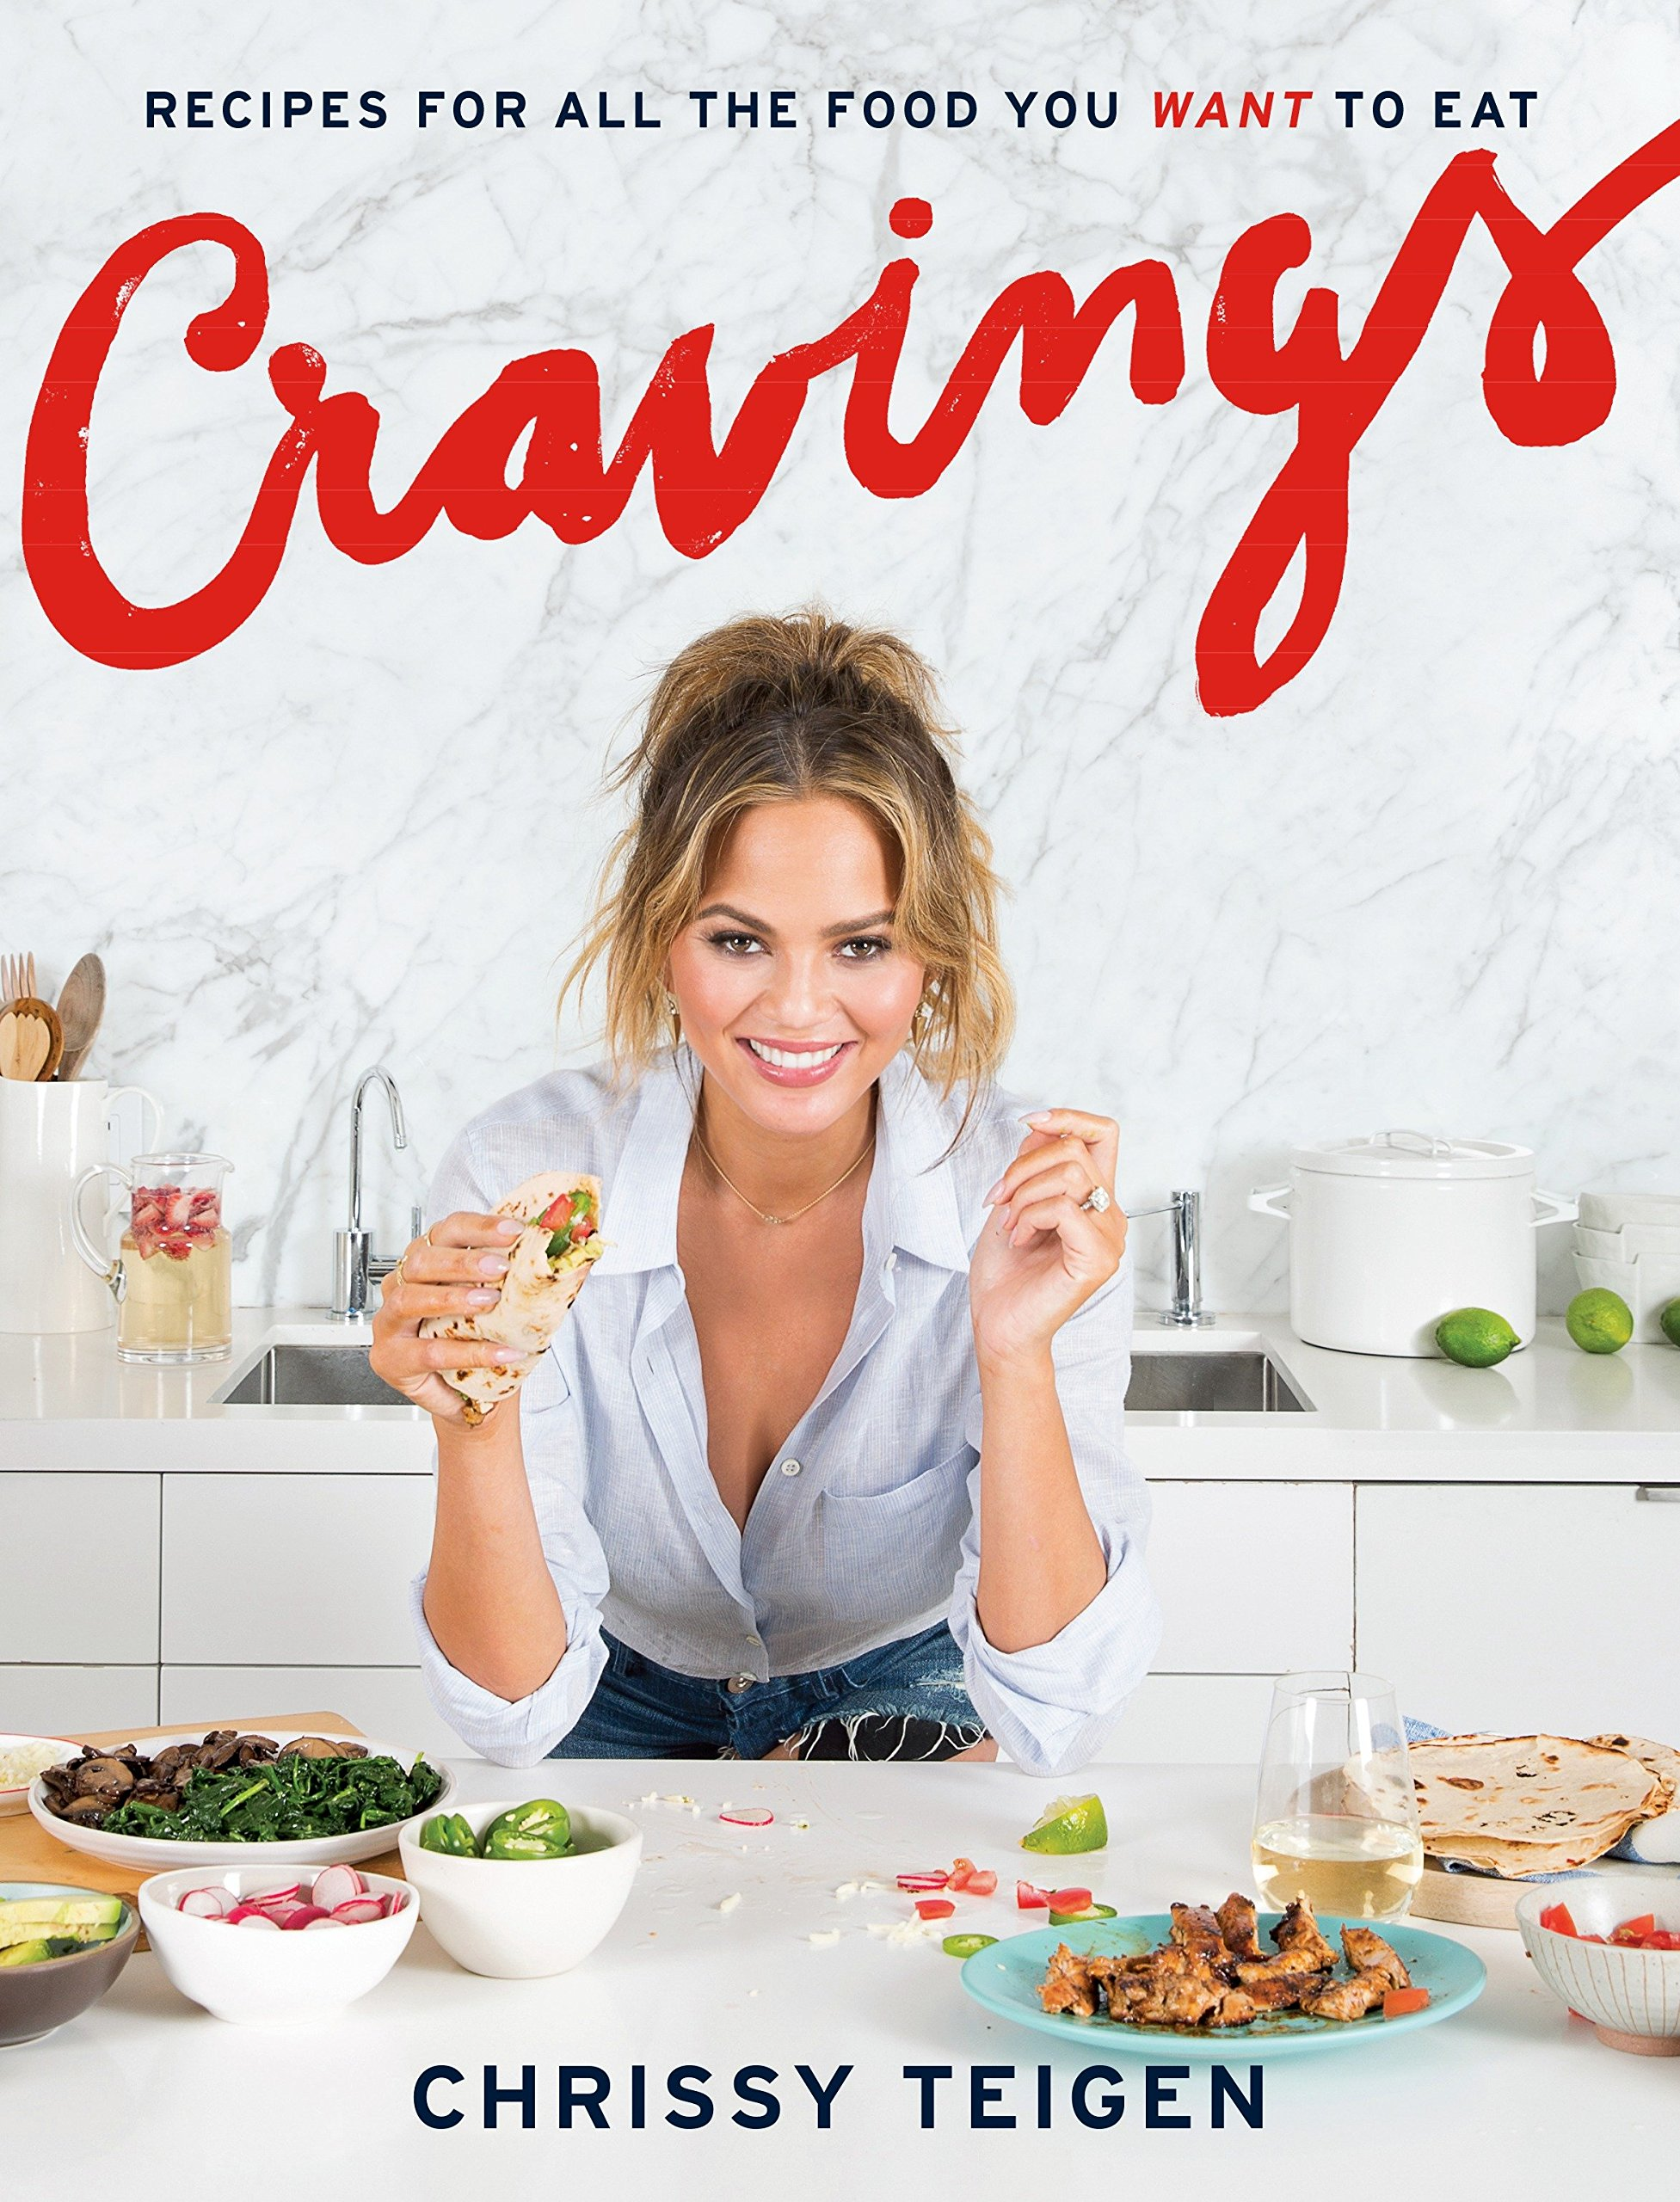 Chrissy Teigen Quit Instagramming Food Because Her Butt Gets MoreLikes foto